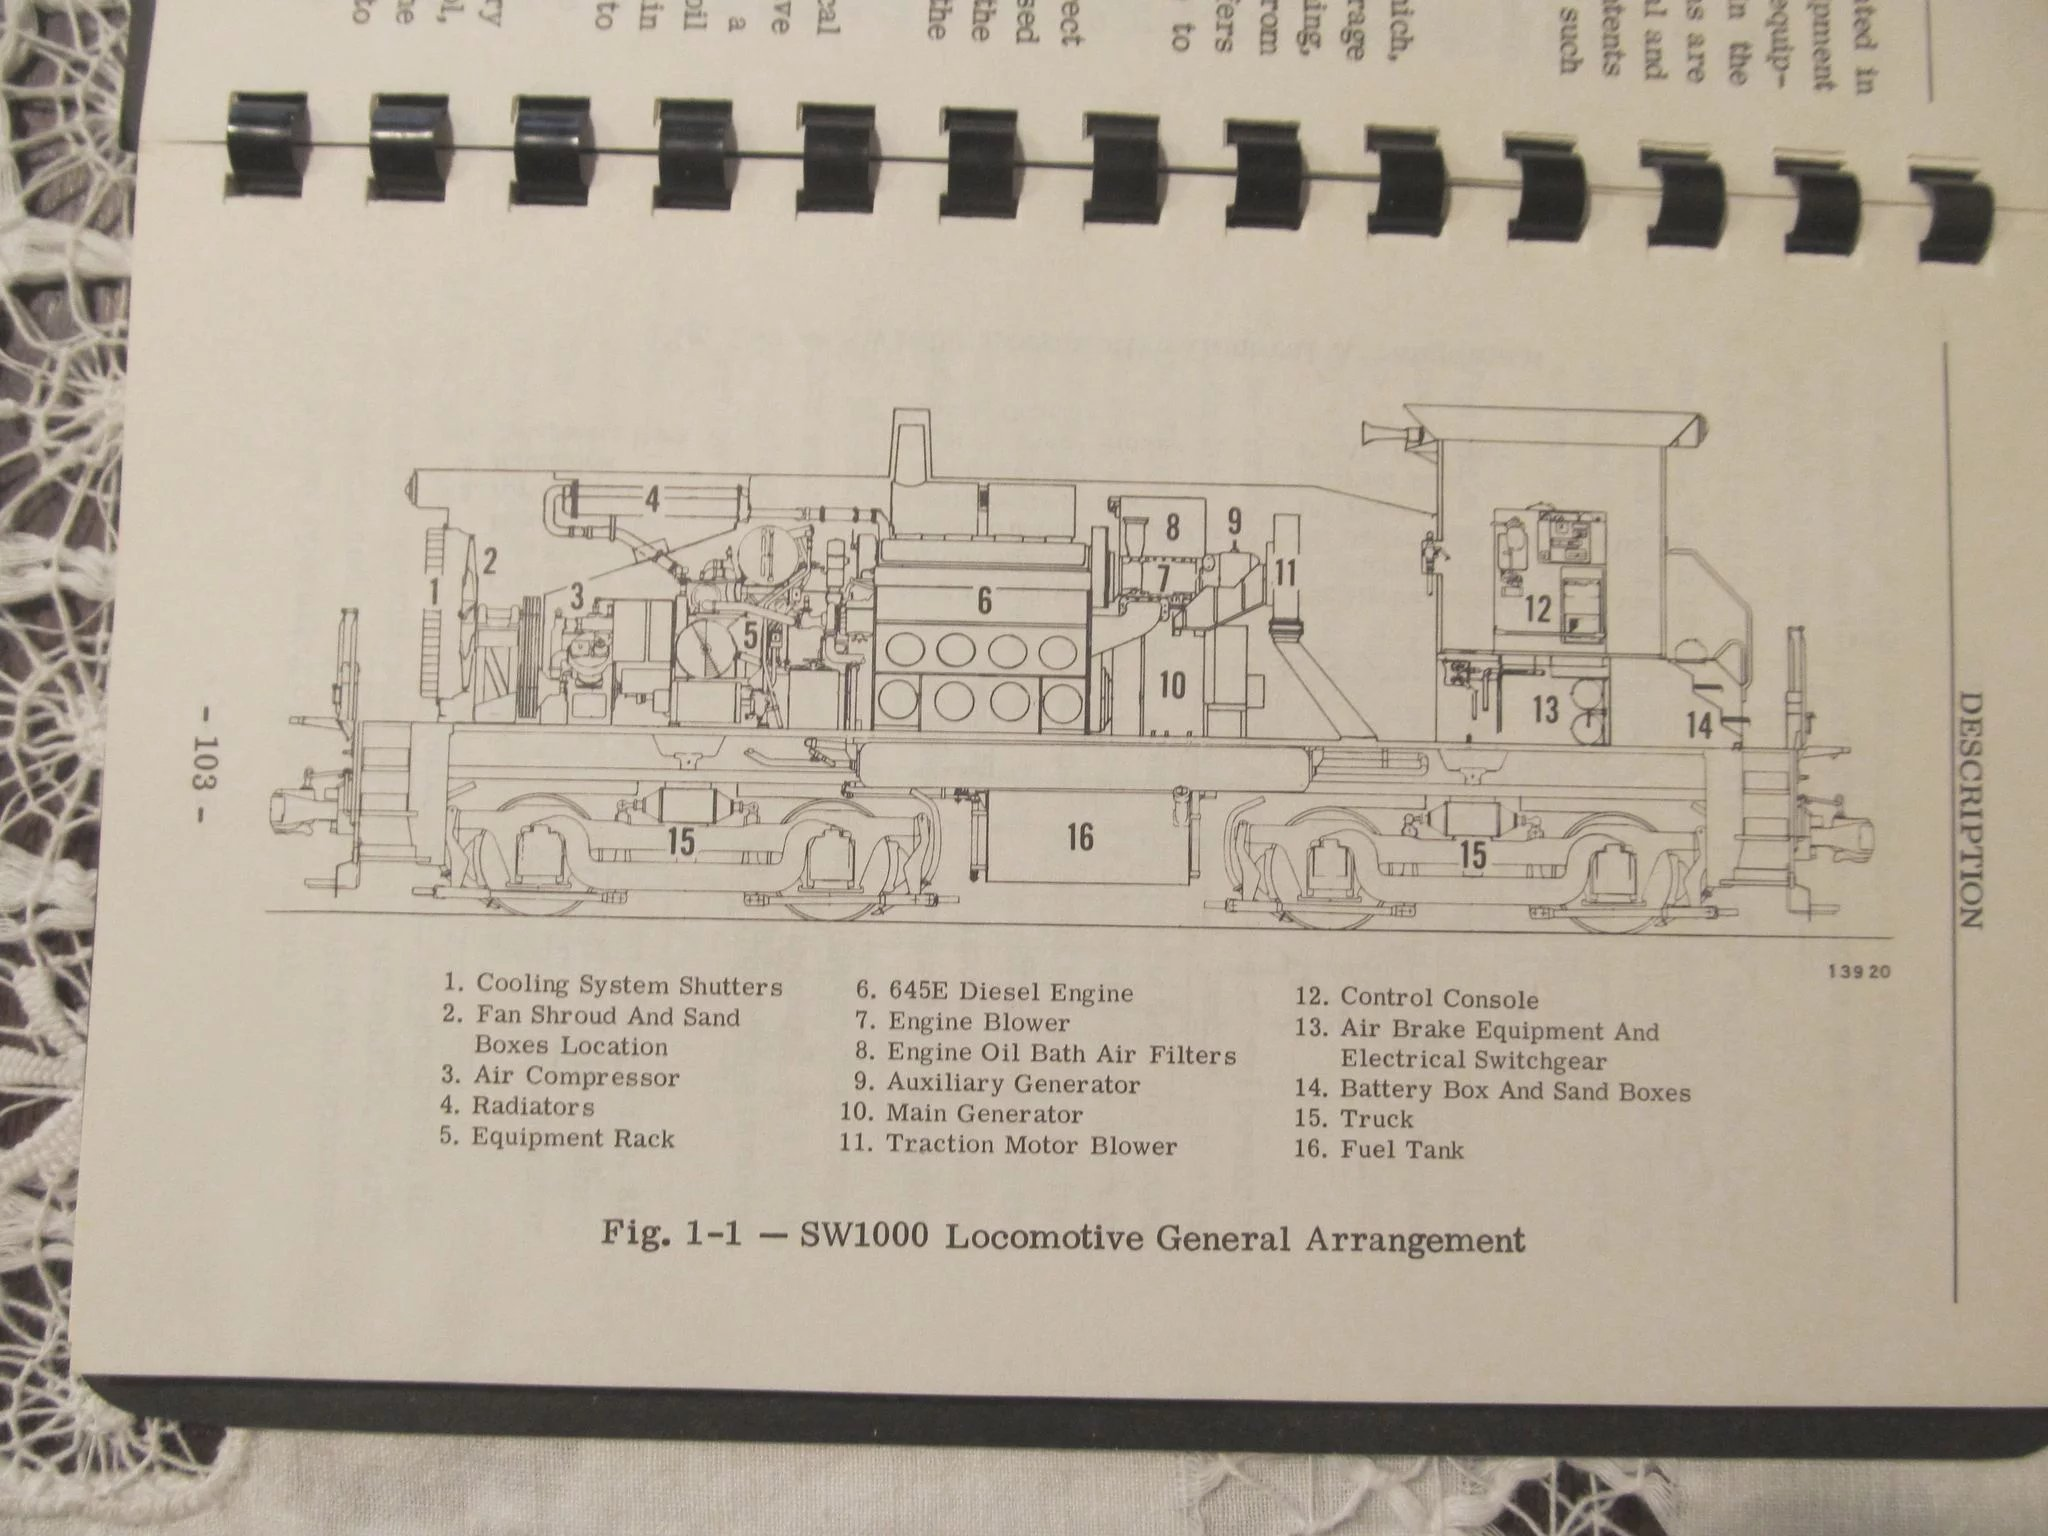 1969 emd diesel locomotive sw1000 sw1500 operators manual general rh rubylane com SW1500 Locomotive Service Manual Relco Locomotives New Shop